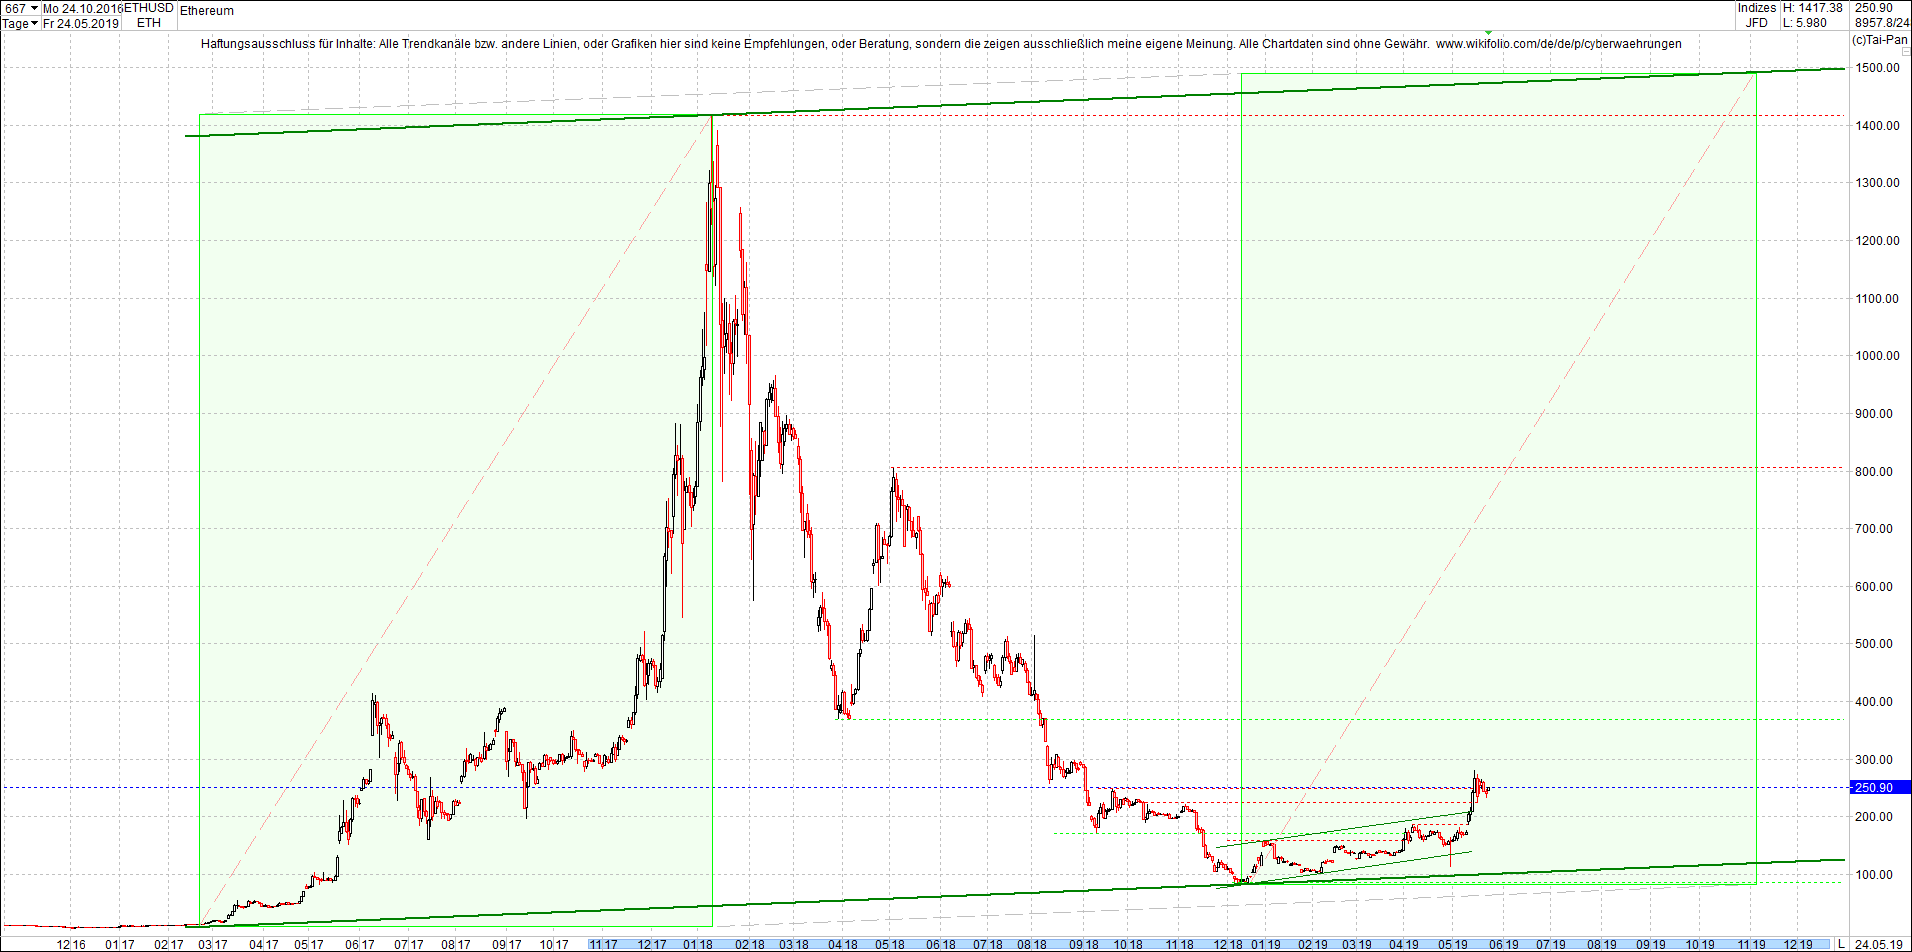 ethereum_chart_heute_am_mittag.png